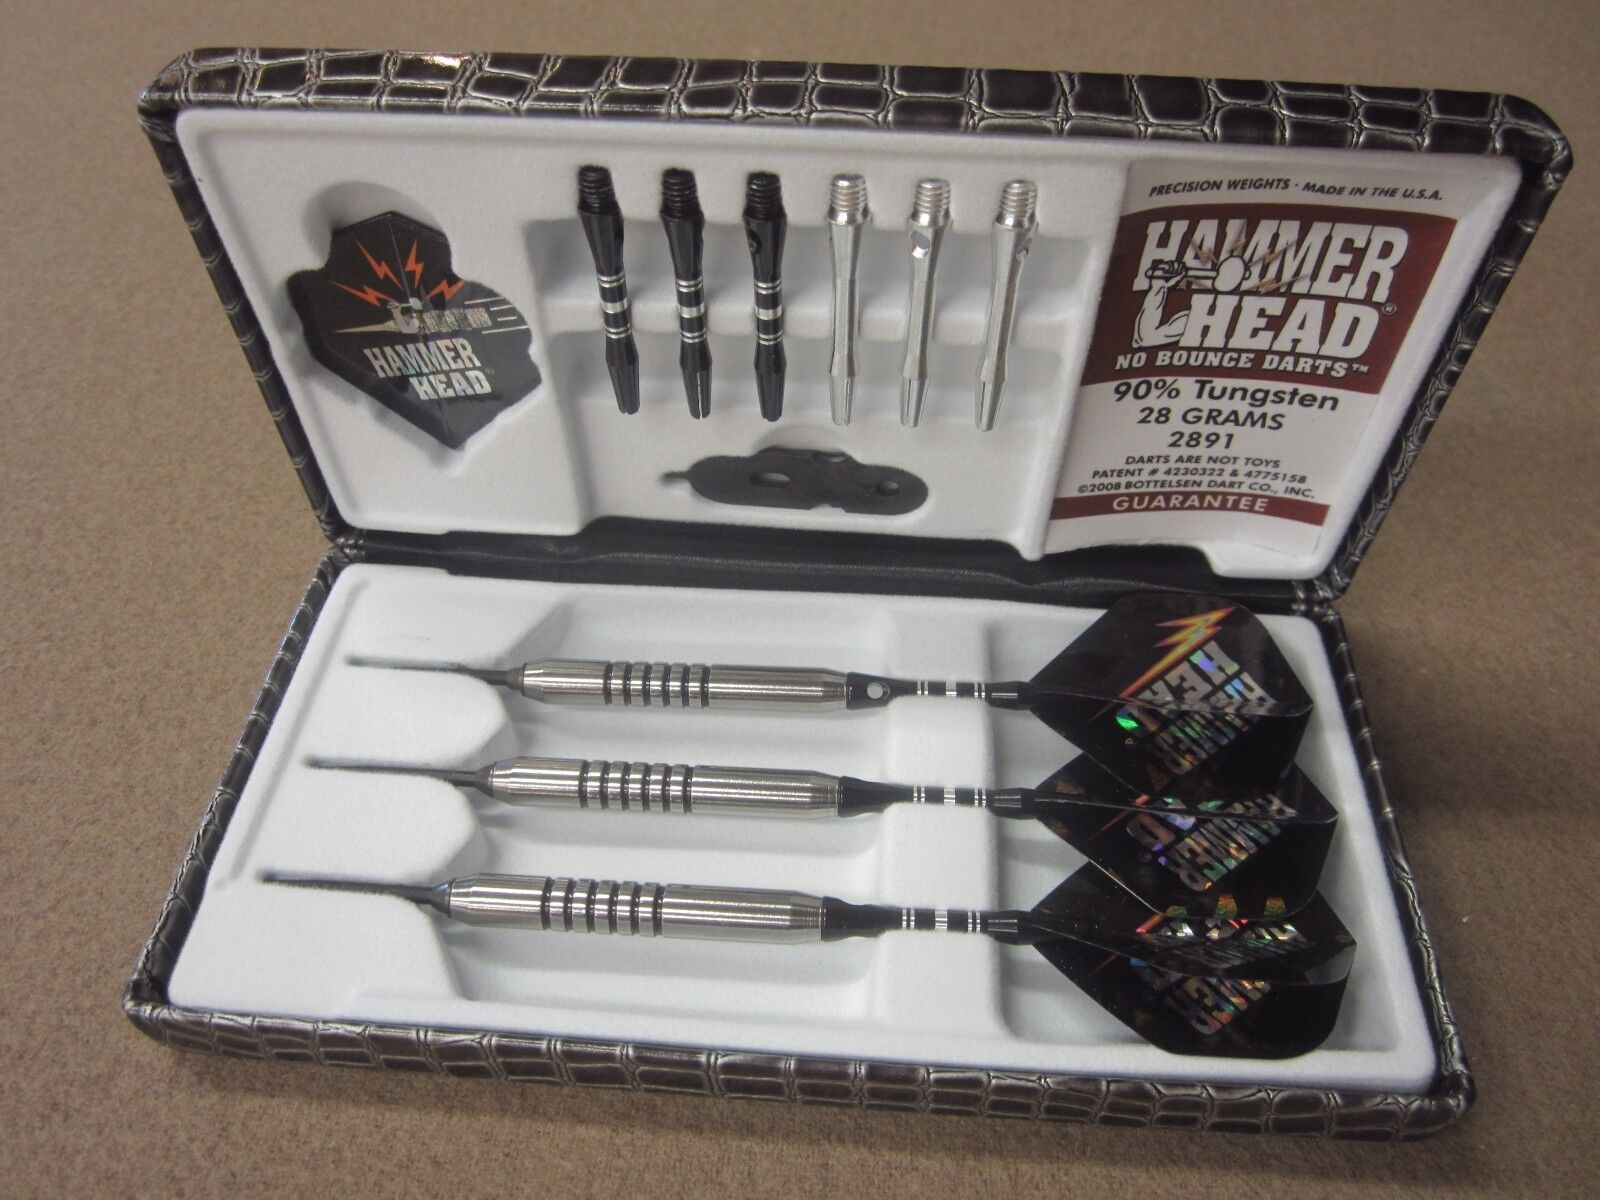 Hammer Head Smooth 28g Steel Steel 28g Tip Darts 90% Tungsten 2891 w/ FREE Shipping 00d189